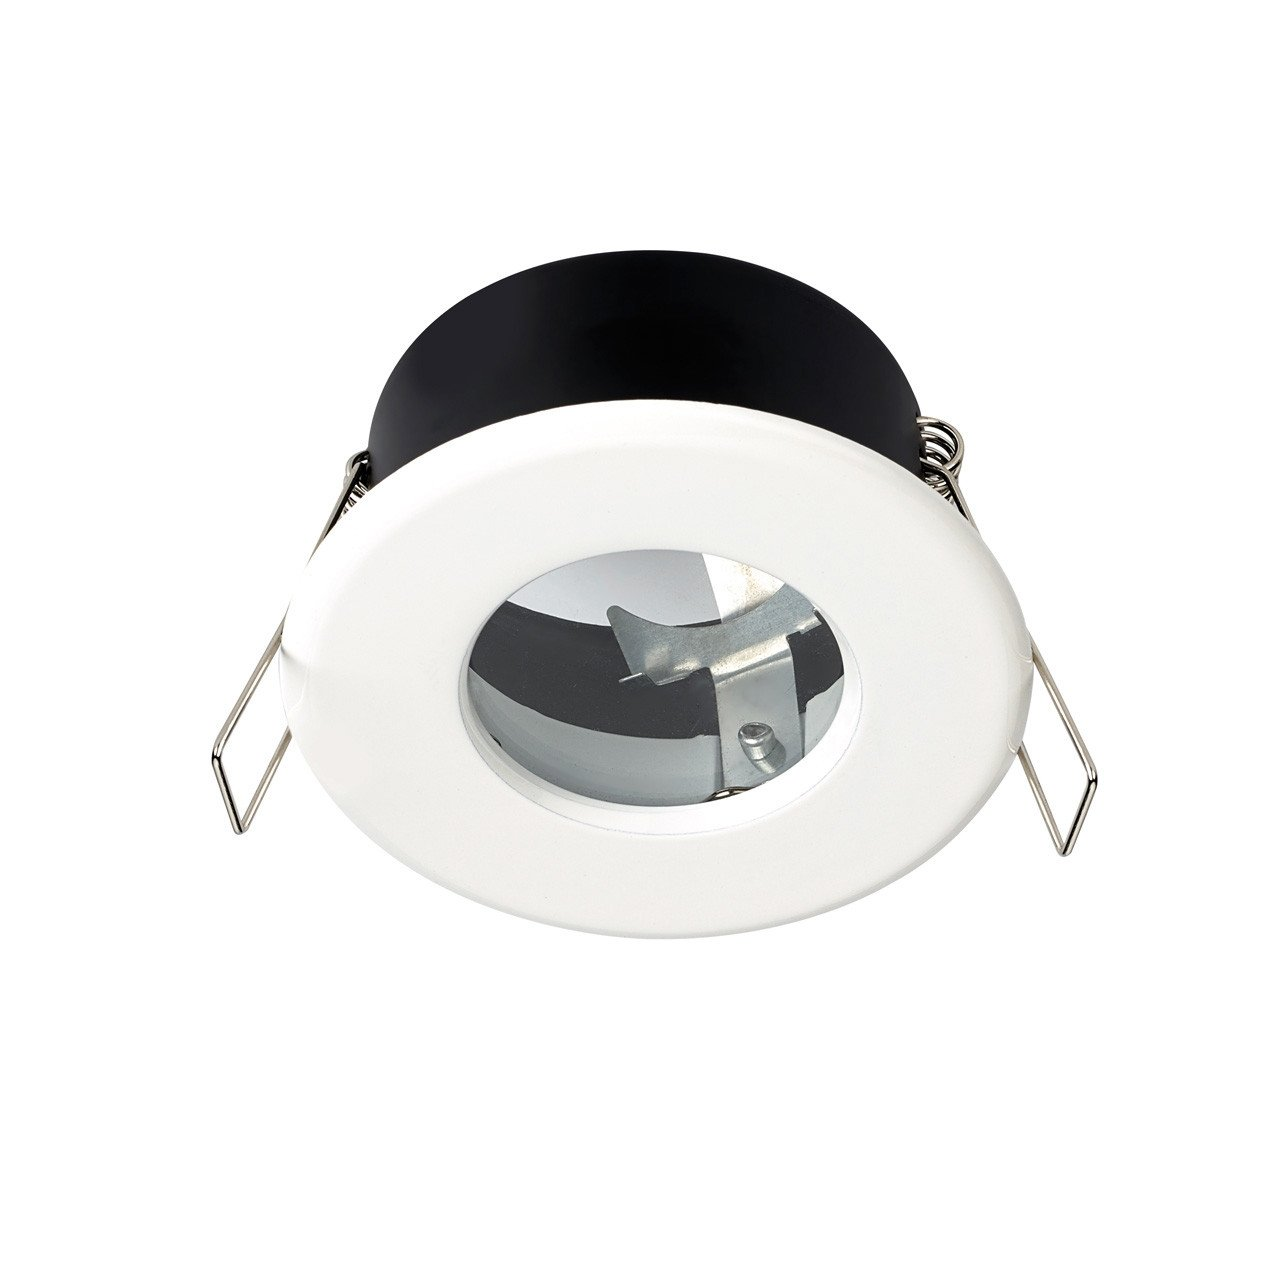 Hudson Reed White Shower Light Fitting - SE30014W0